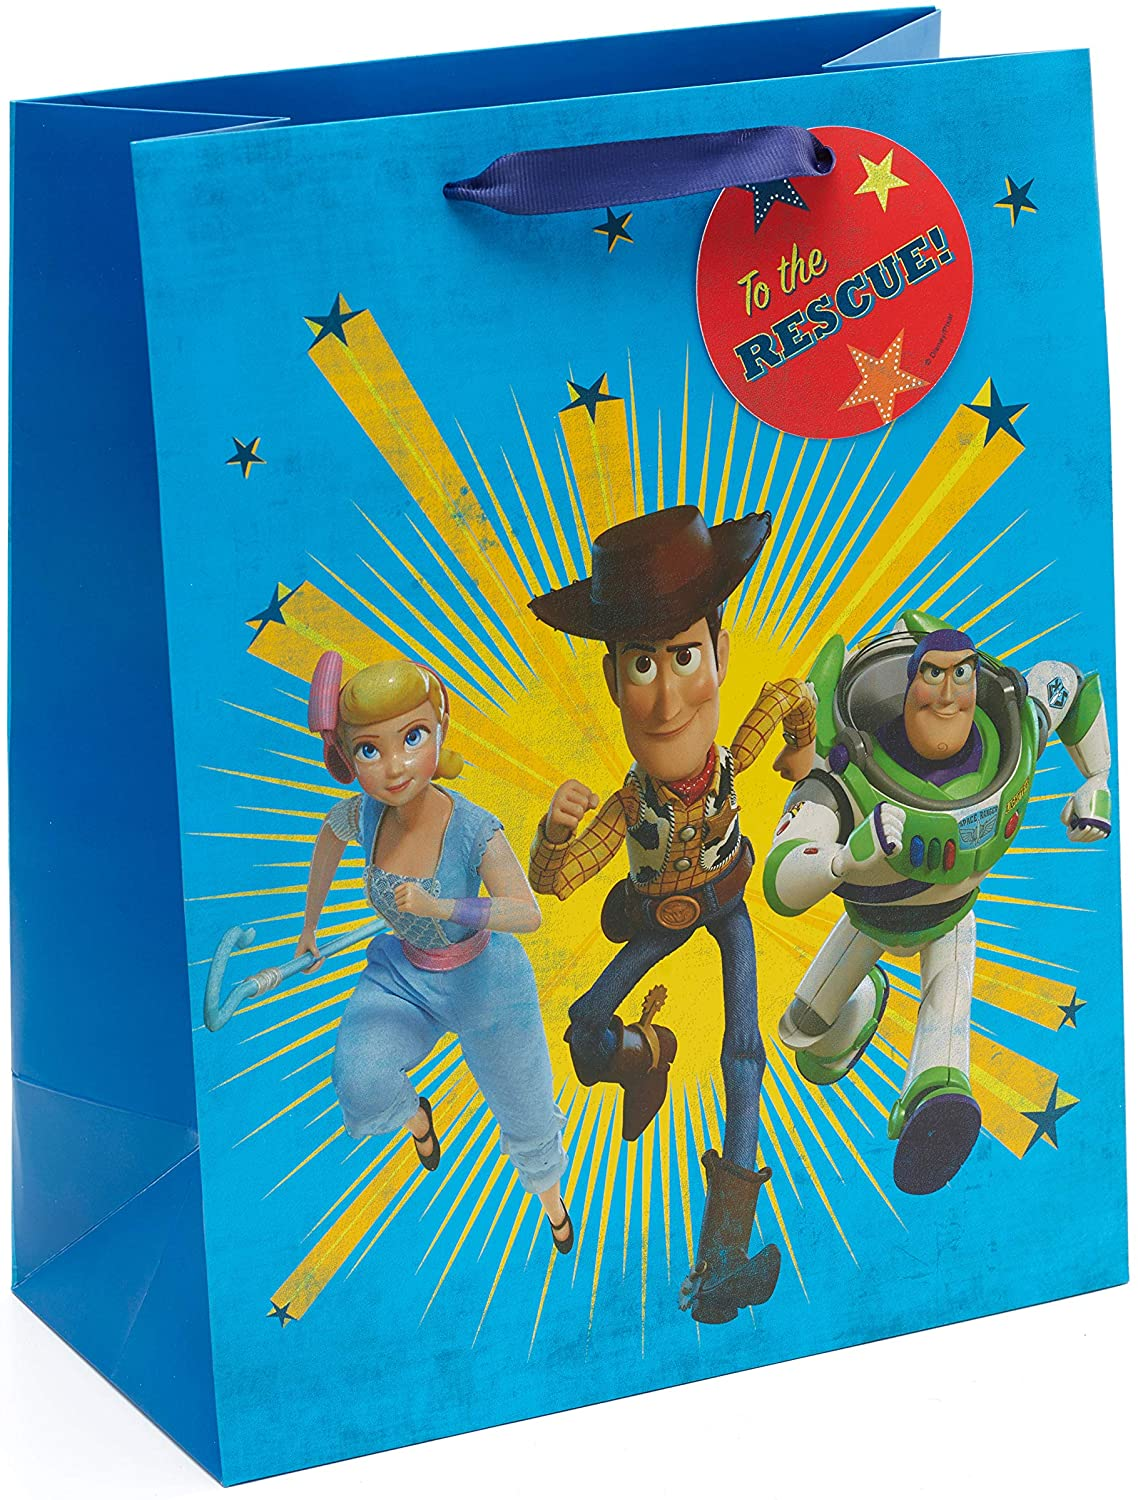 Large Birthday Gift Bag - Disney Gift Bag - Toy Story 4 - Perfect for Kids Presents